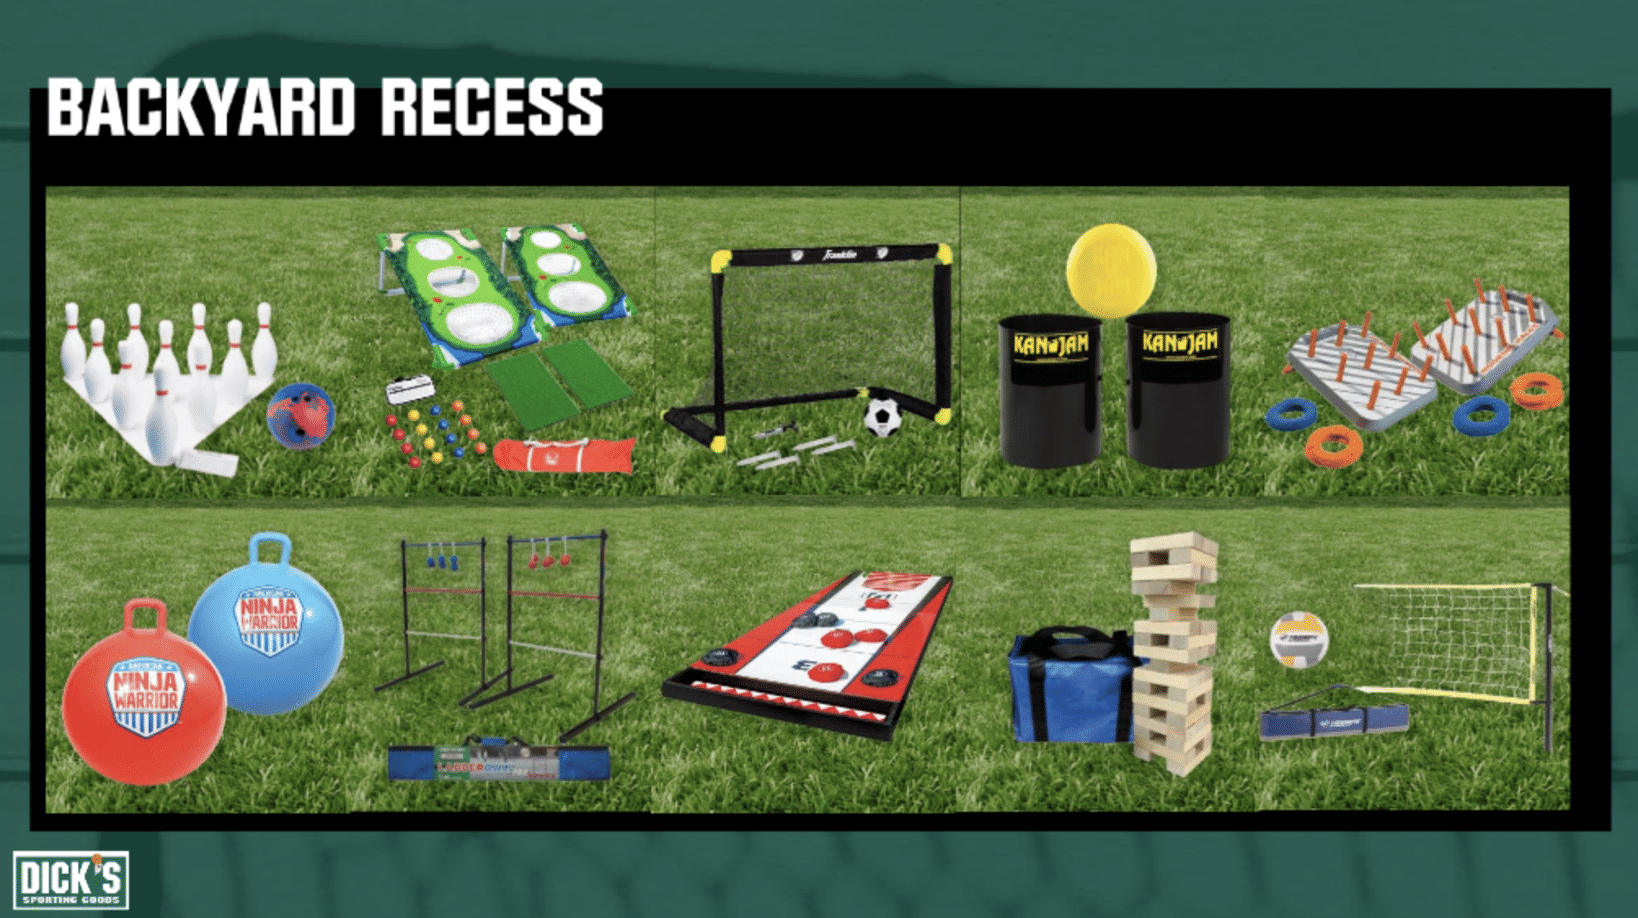 Backyard Recess games at Dick's